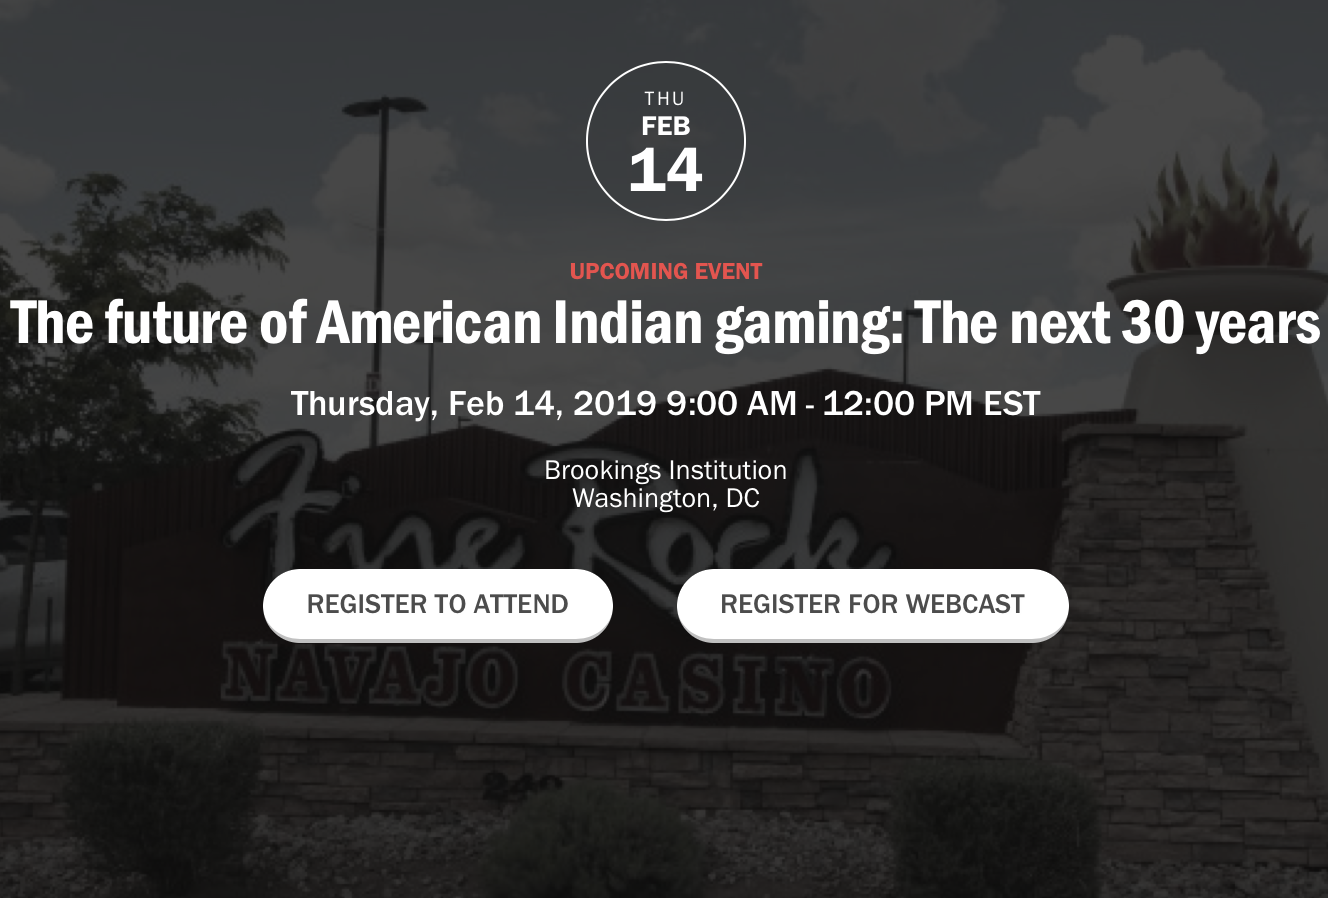 #StateOfIndianGaming Talk: 'The future of American Indian gaming'